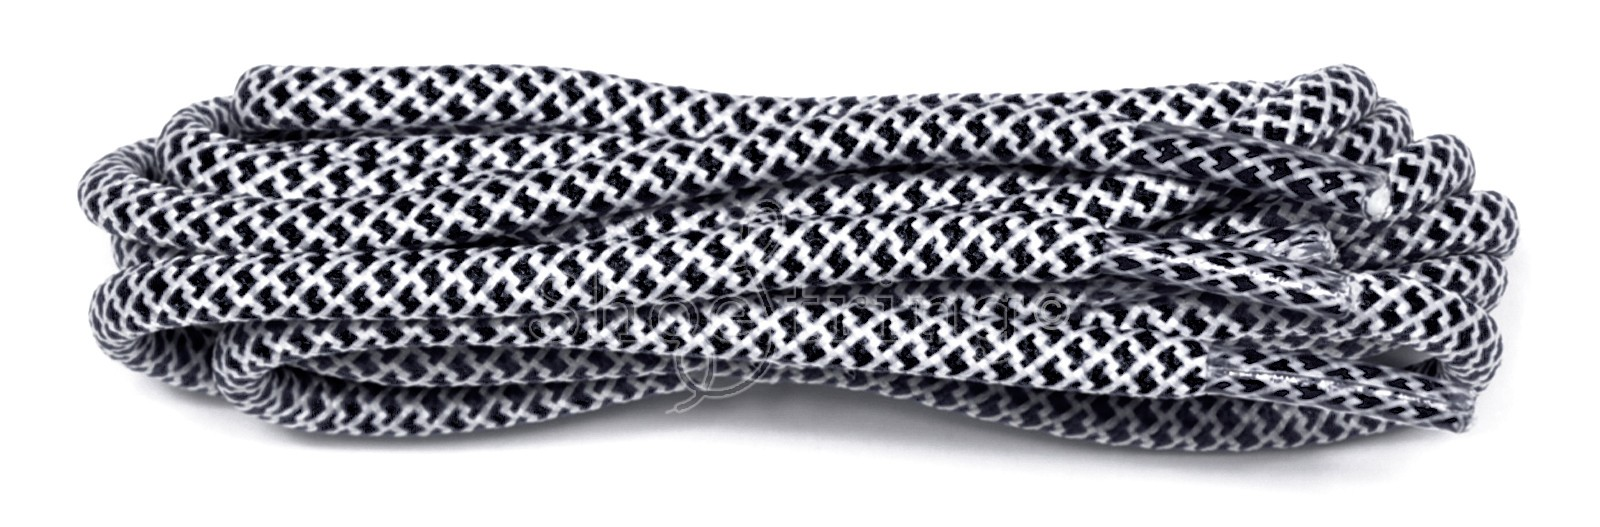 Black-white 120cm Honeycomb Rope Laces